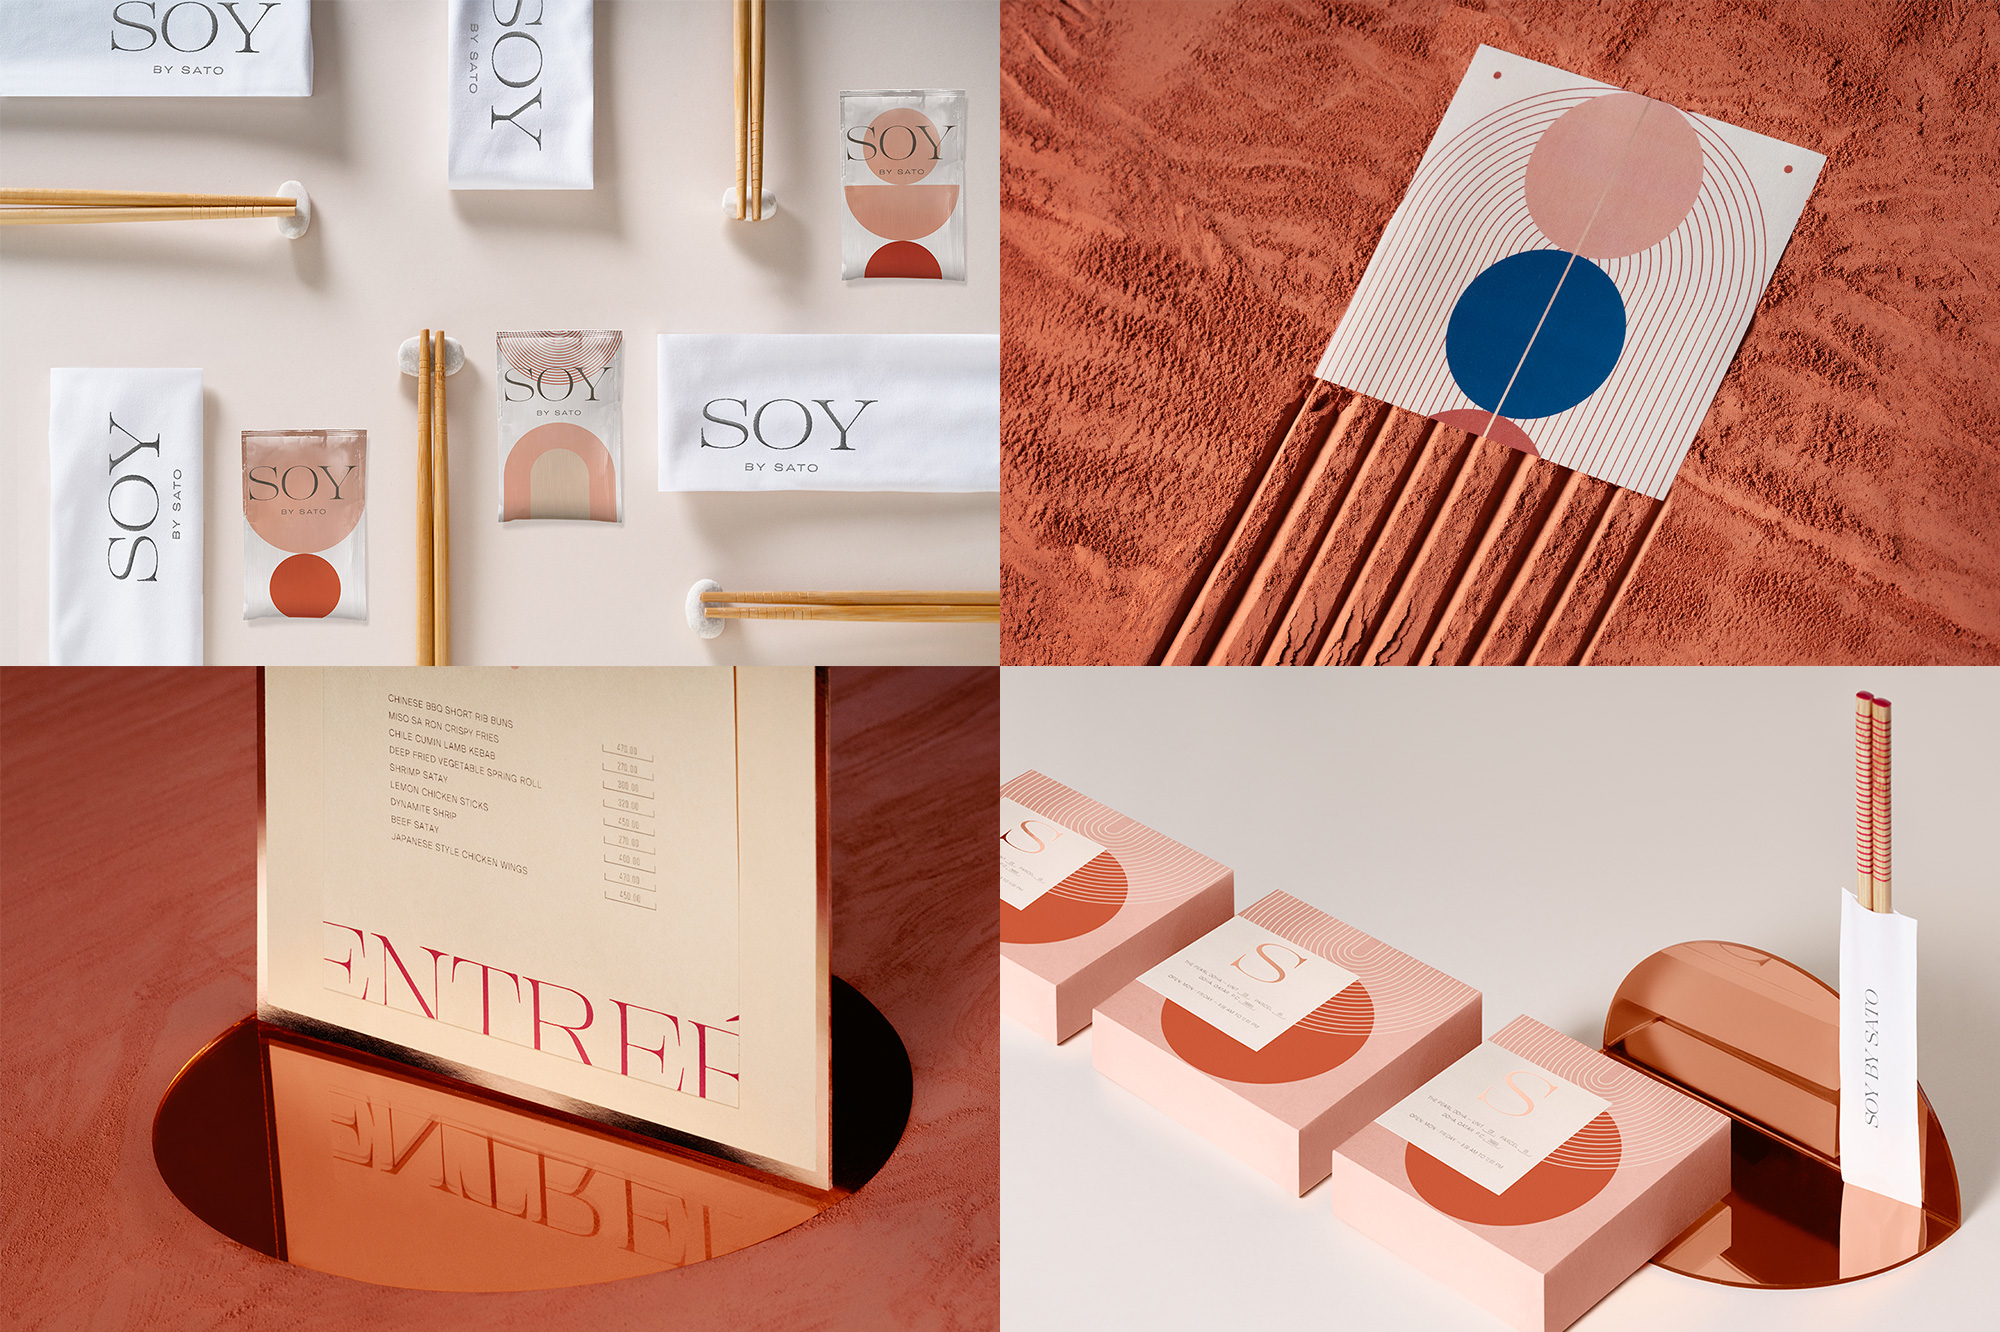 Soy By Sato by Futura